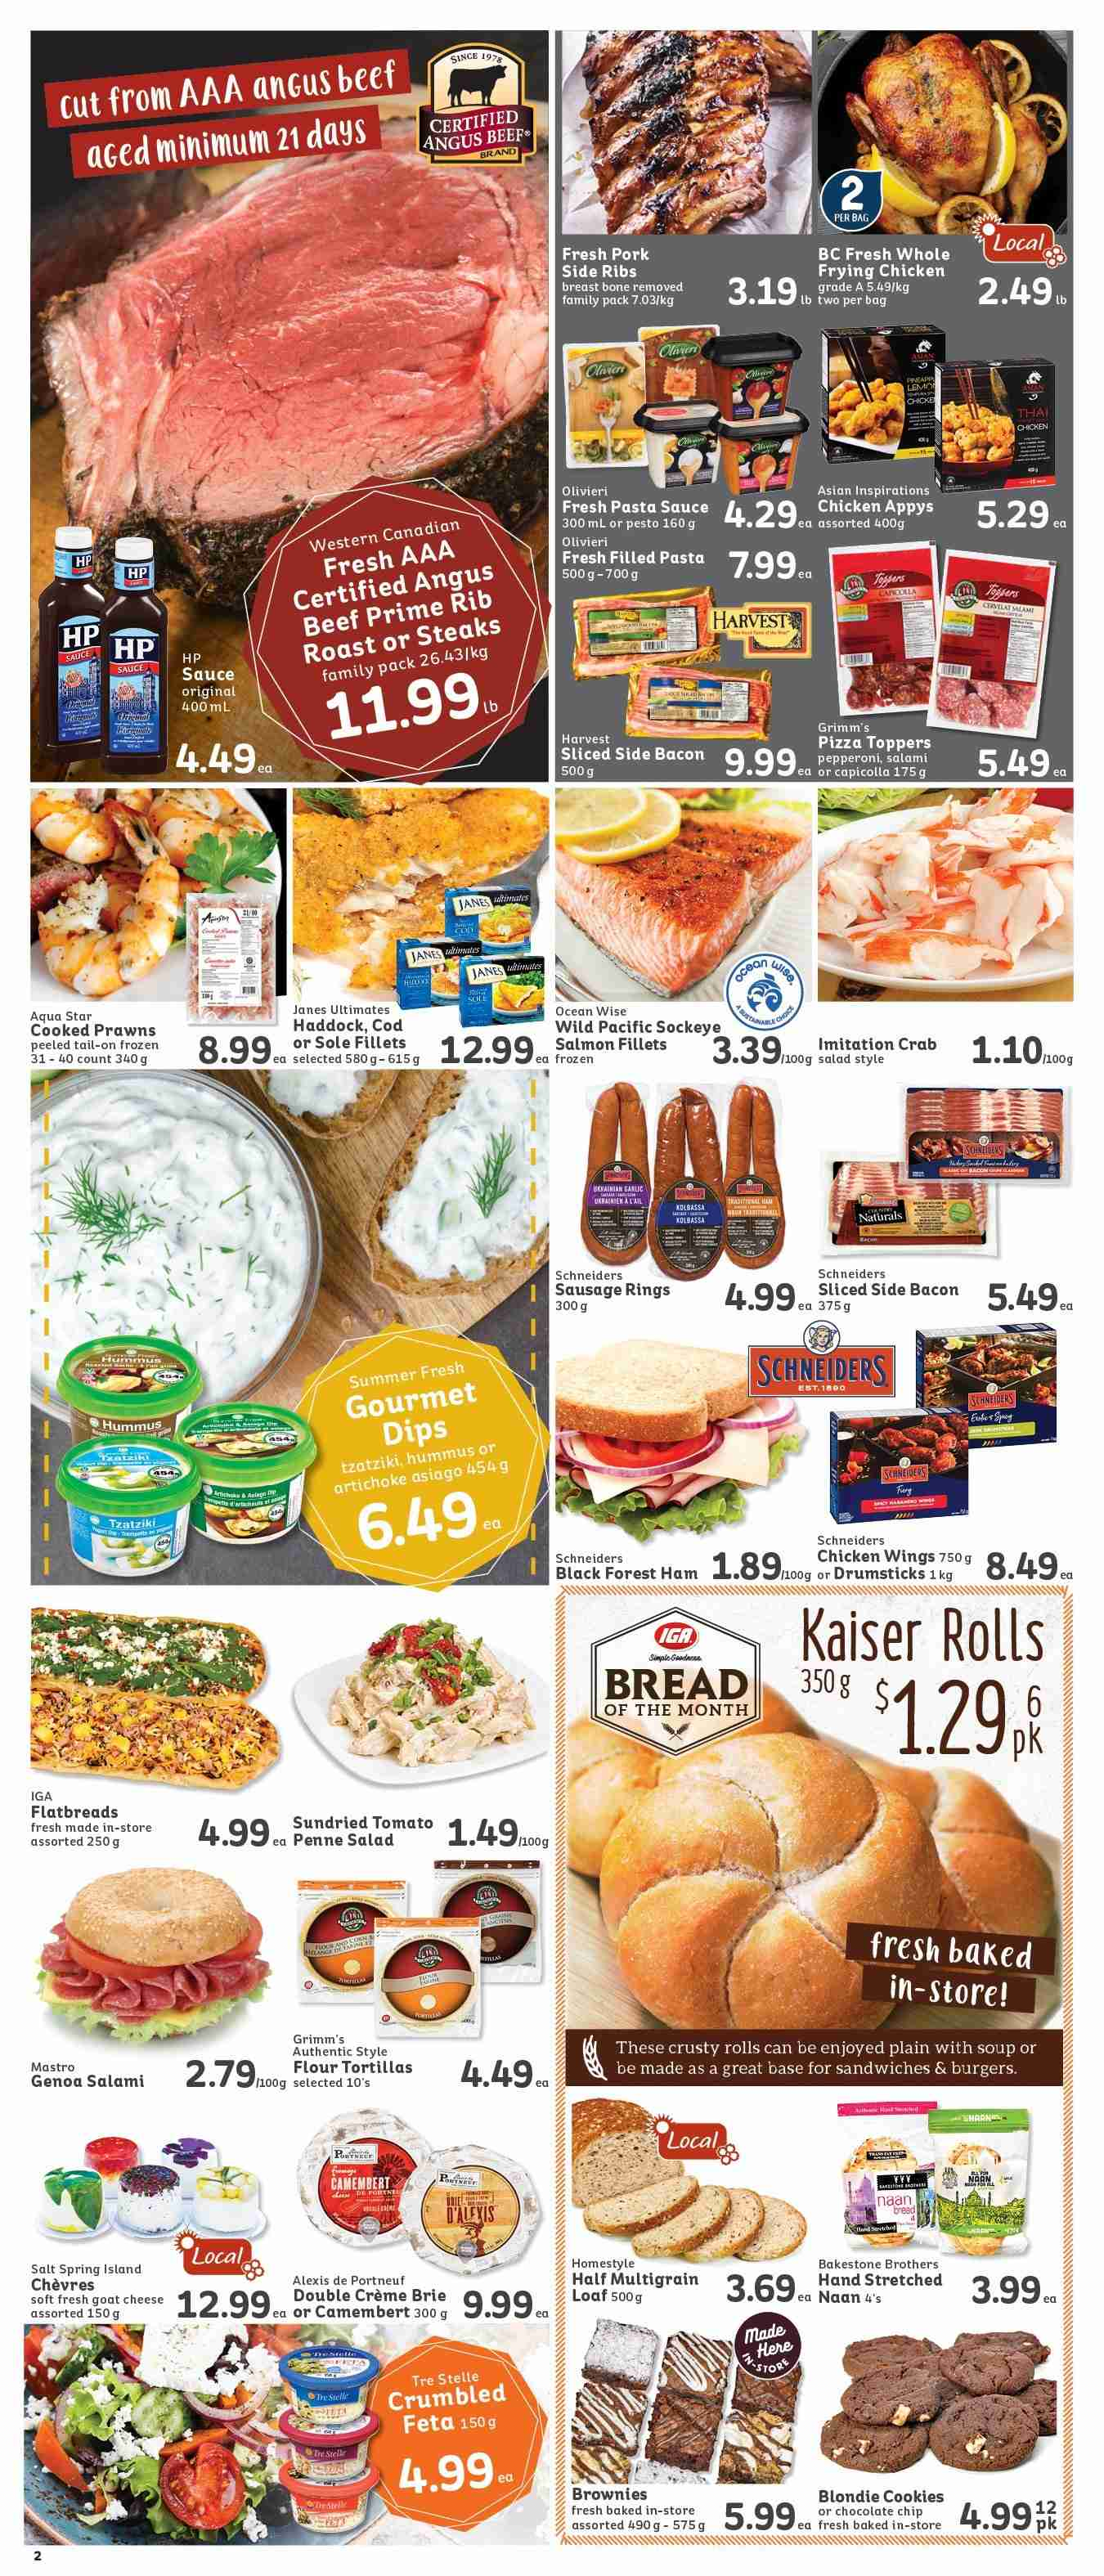 IGA Flyer  - March 01, 2019 - March 07, 2019. Page 2.